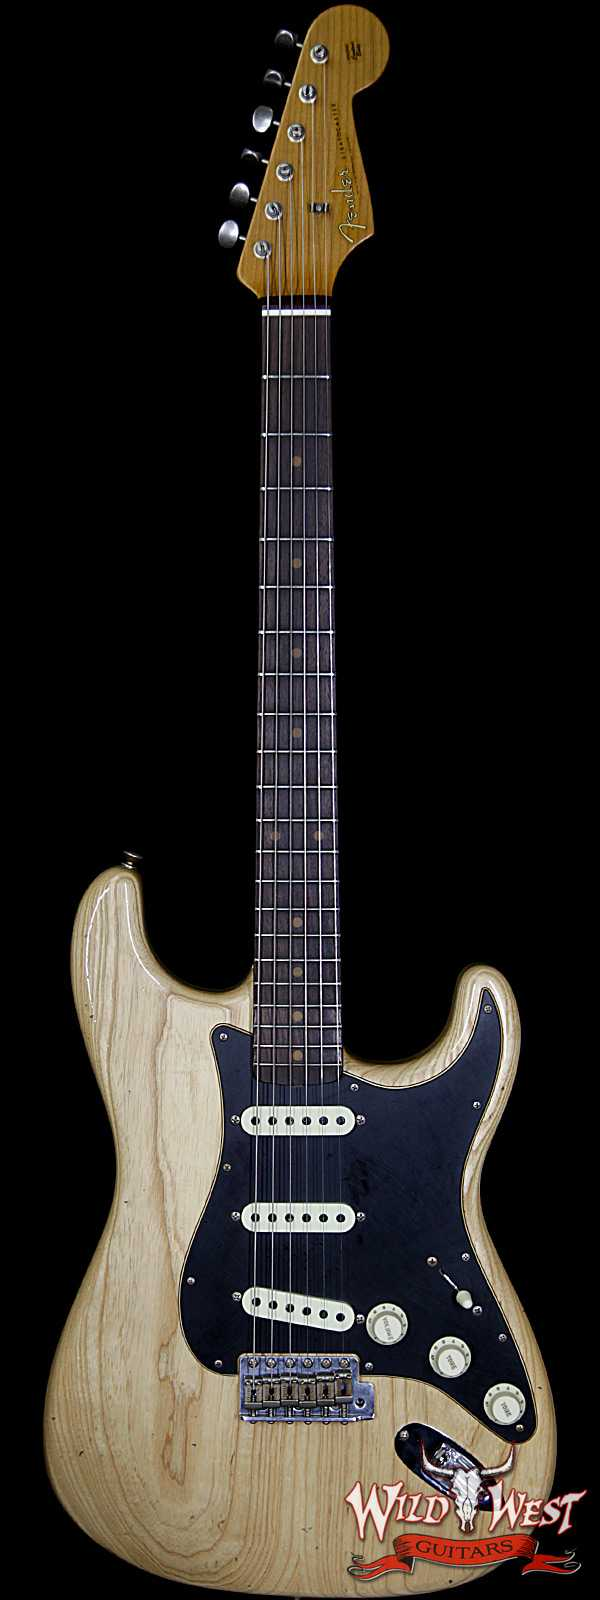 Fender LTD Summer Event #57 1962 Stratocaster Roasted Flame Maple Neck Journeyman Relic Aged Natural